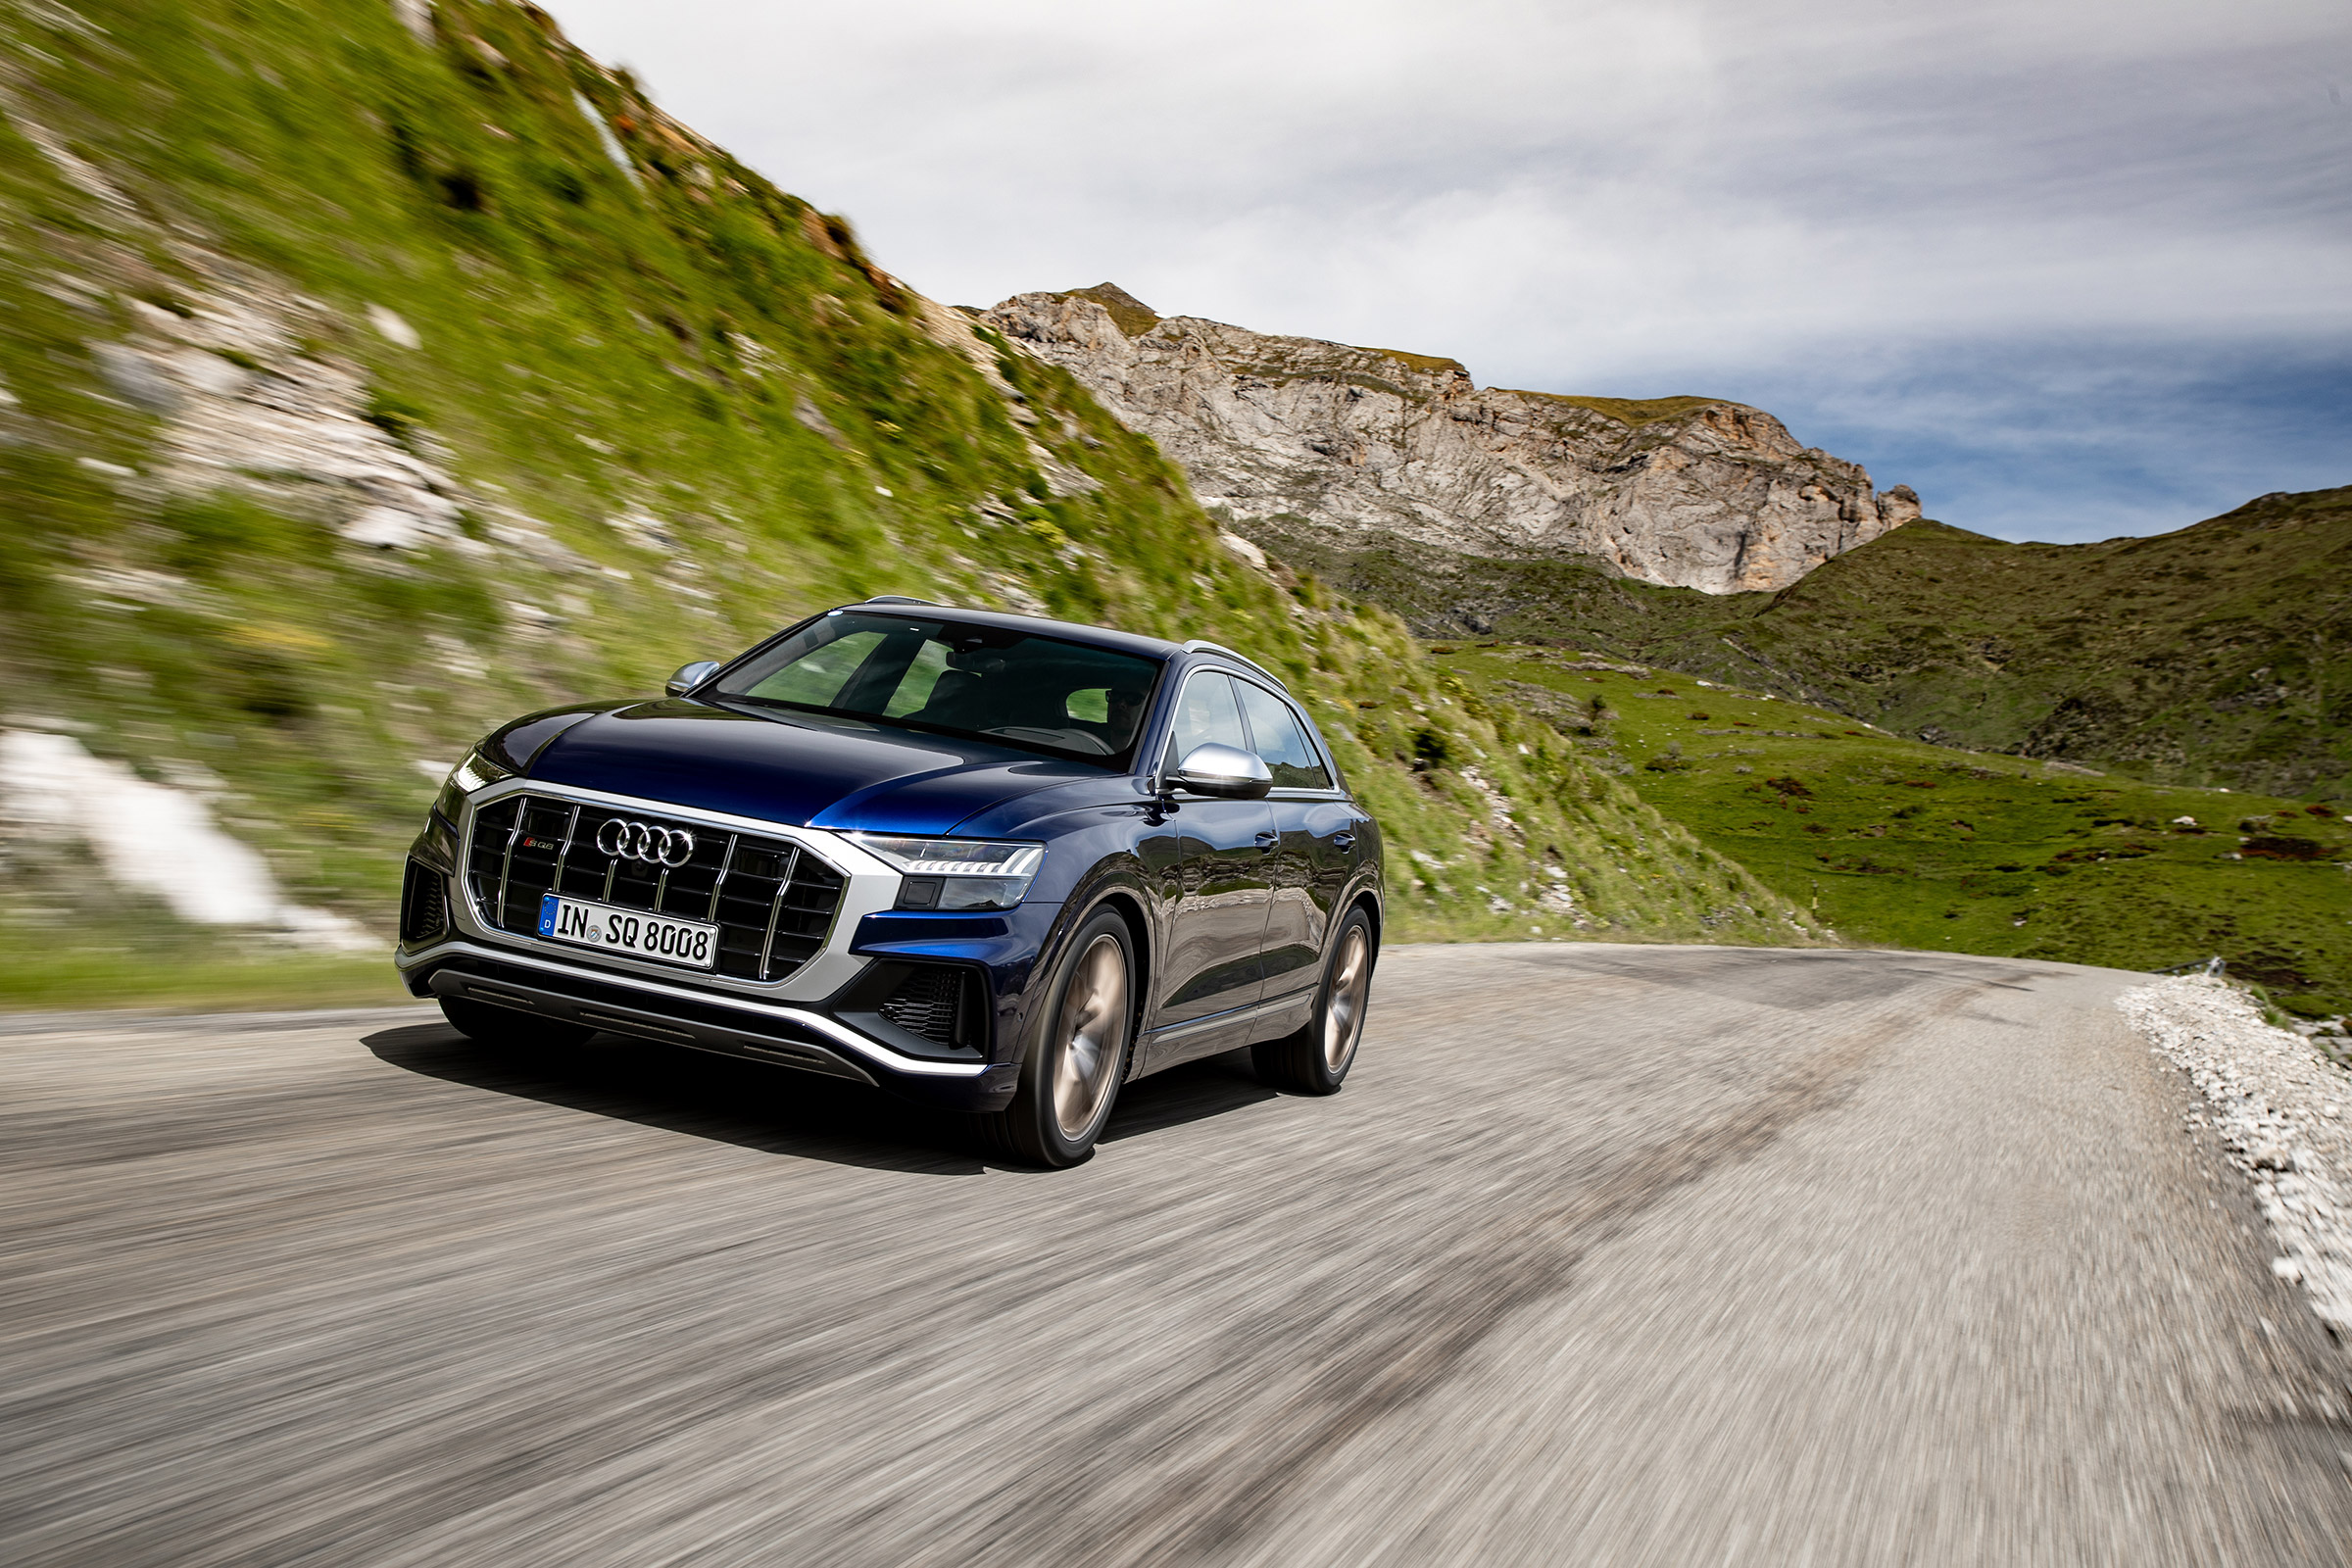 Audi SQ8 review - does diesel power make this SUV a viable